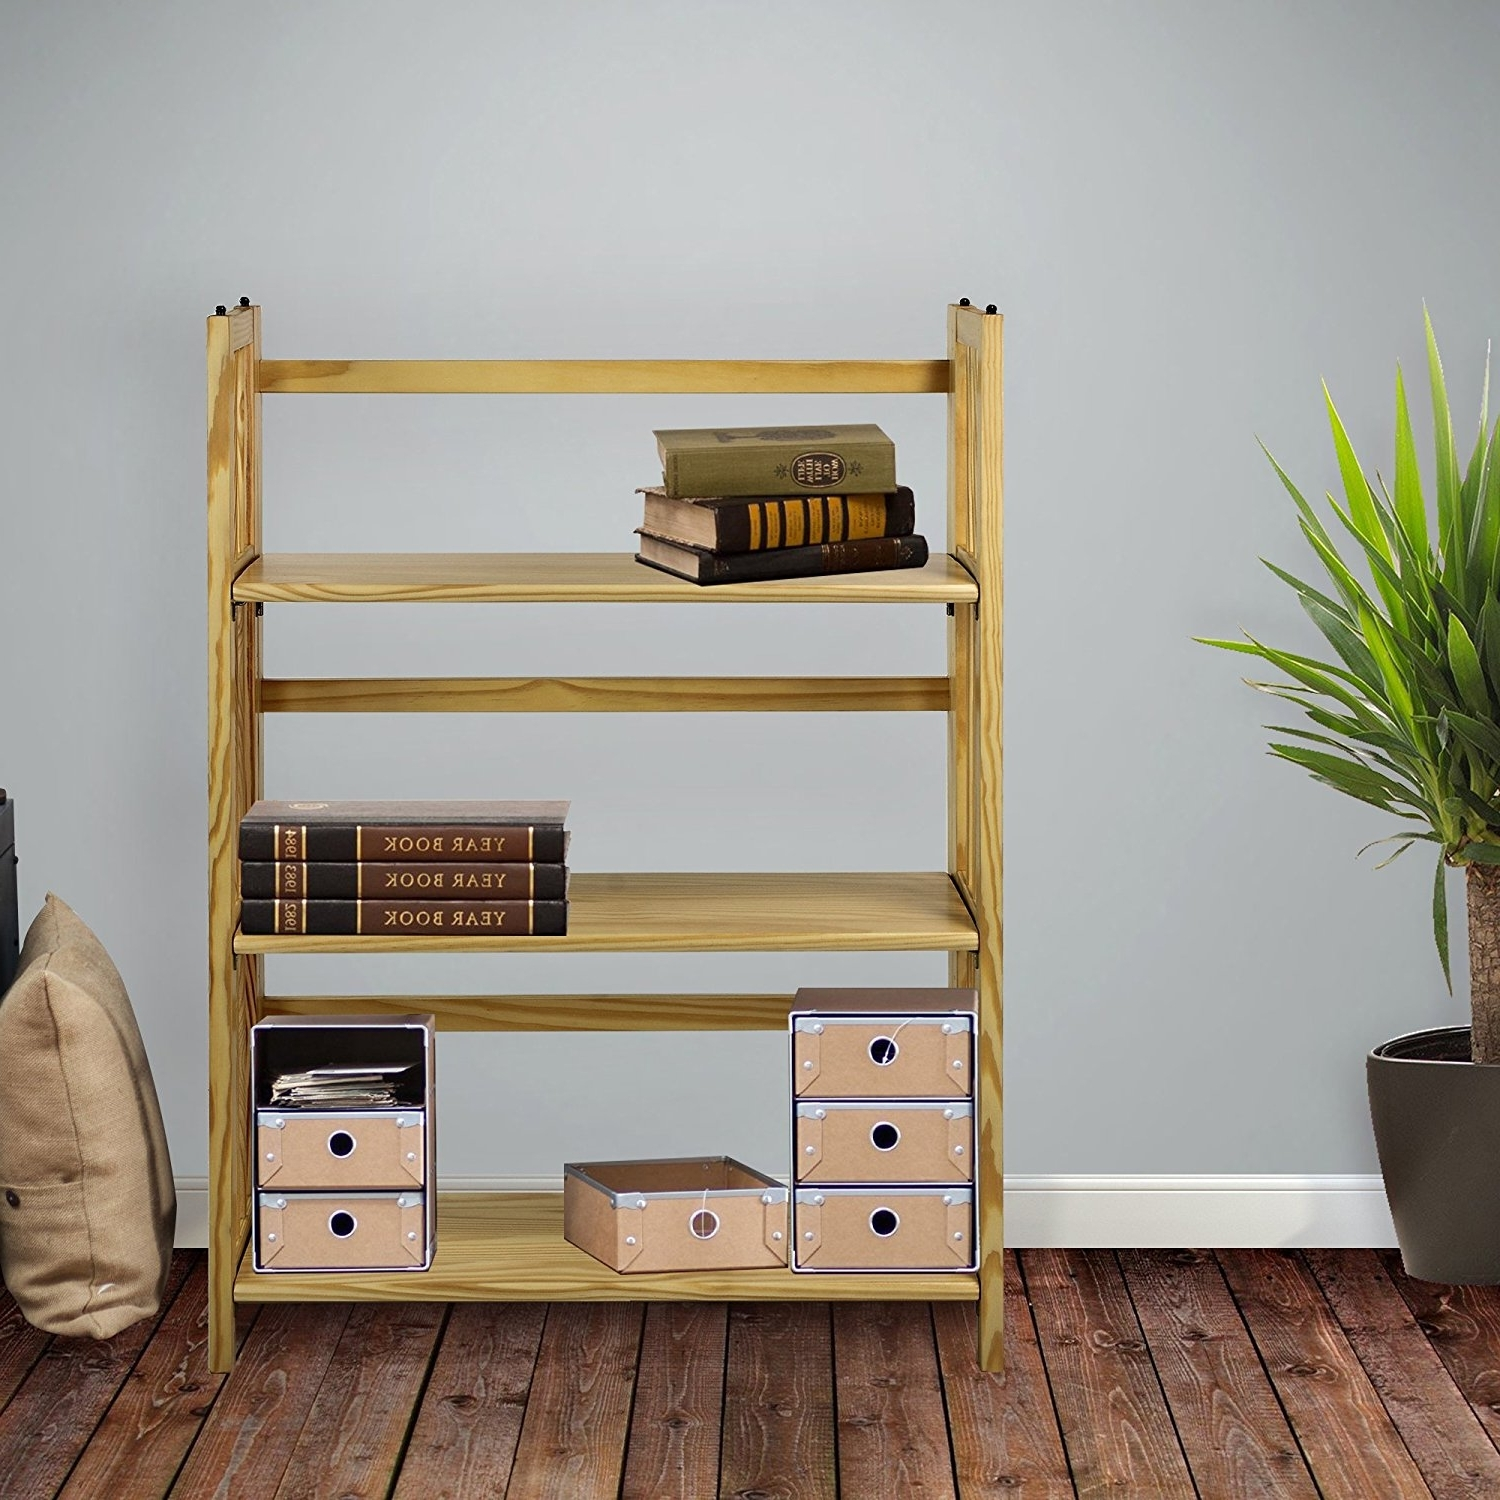 Top 13 Folding Bookcases And Bookshelves Of 2017 For Your Home Within Well Known Foldable Bookcases (View 14 of 15)